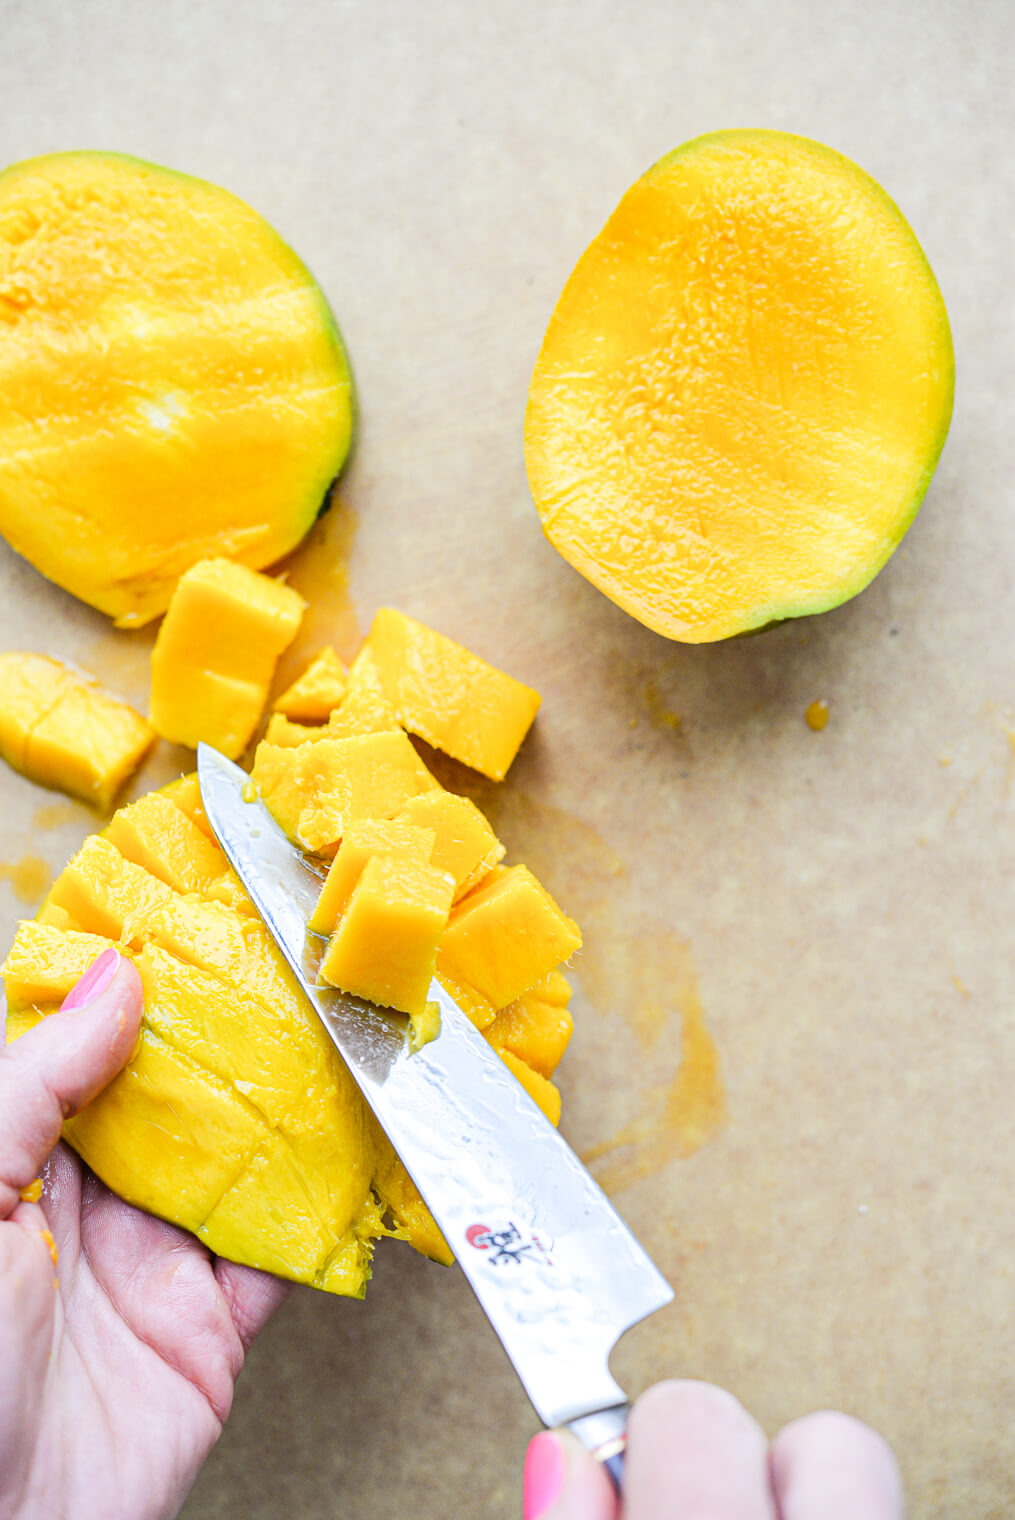 a woman holding the flesh of a mango as she slices the cubes of mango off of it